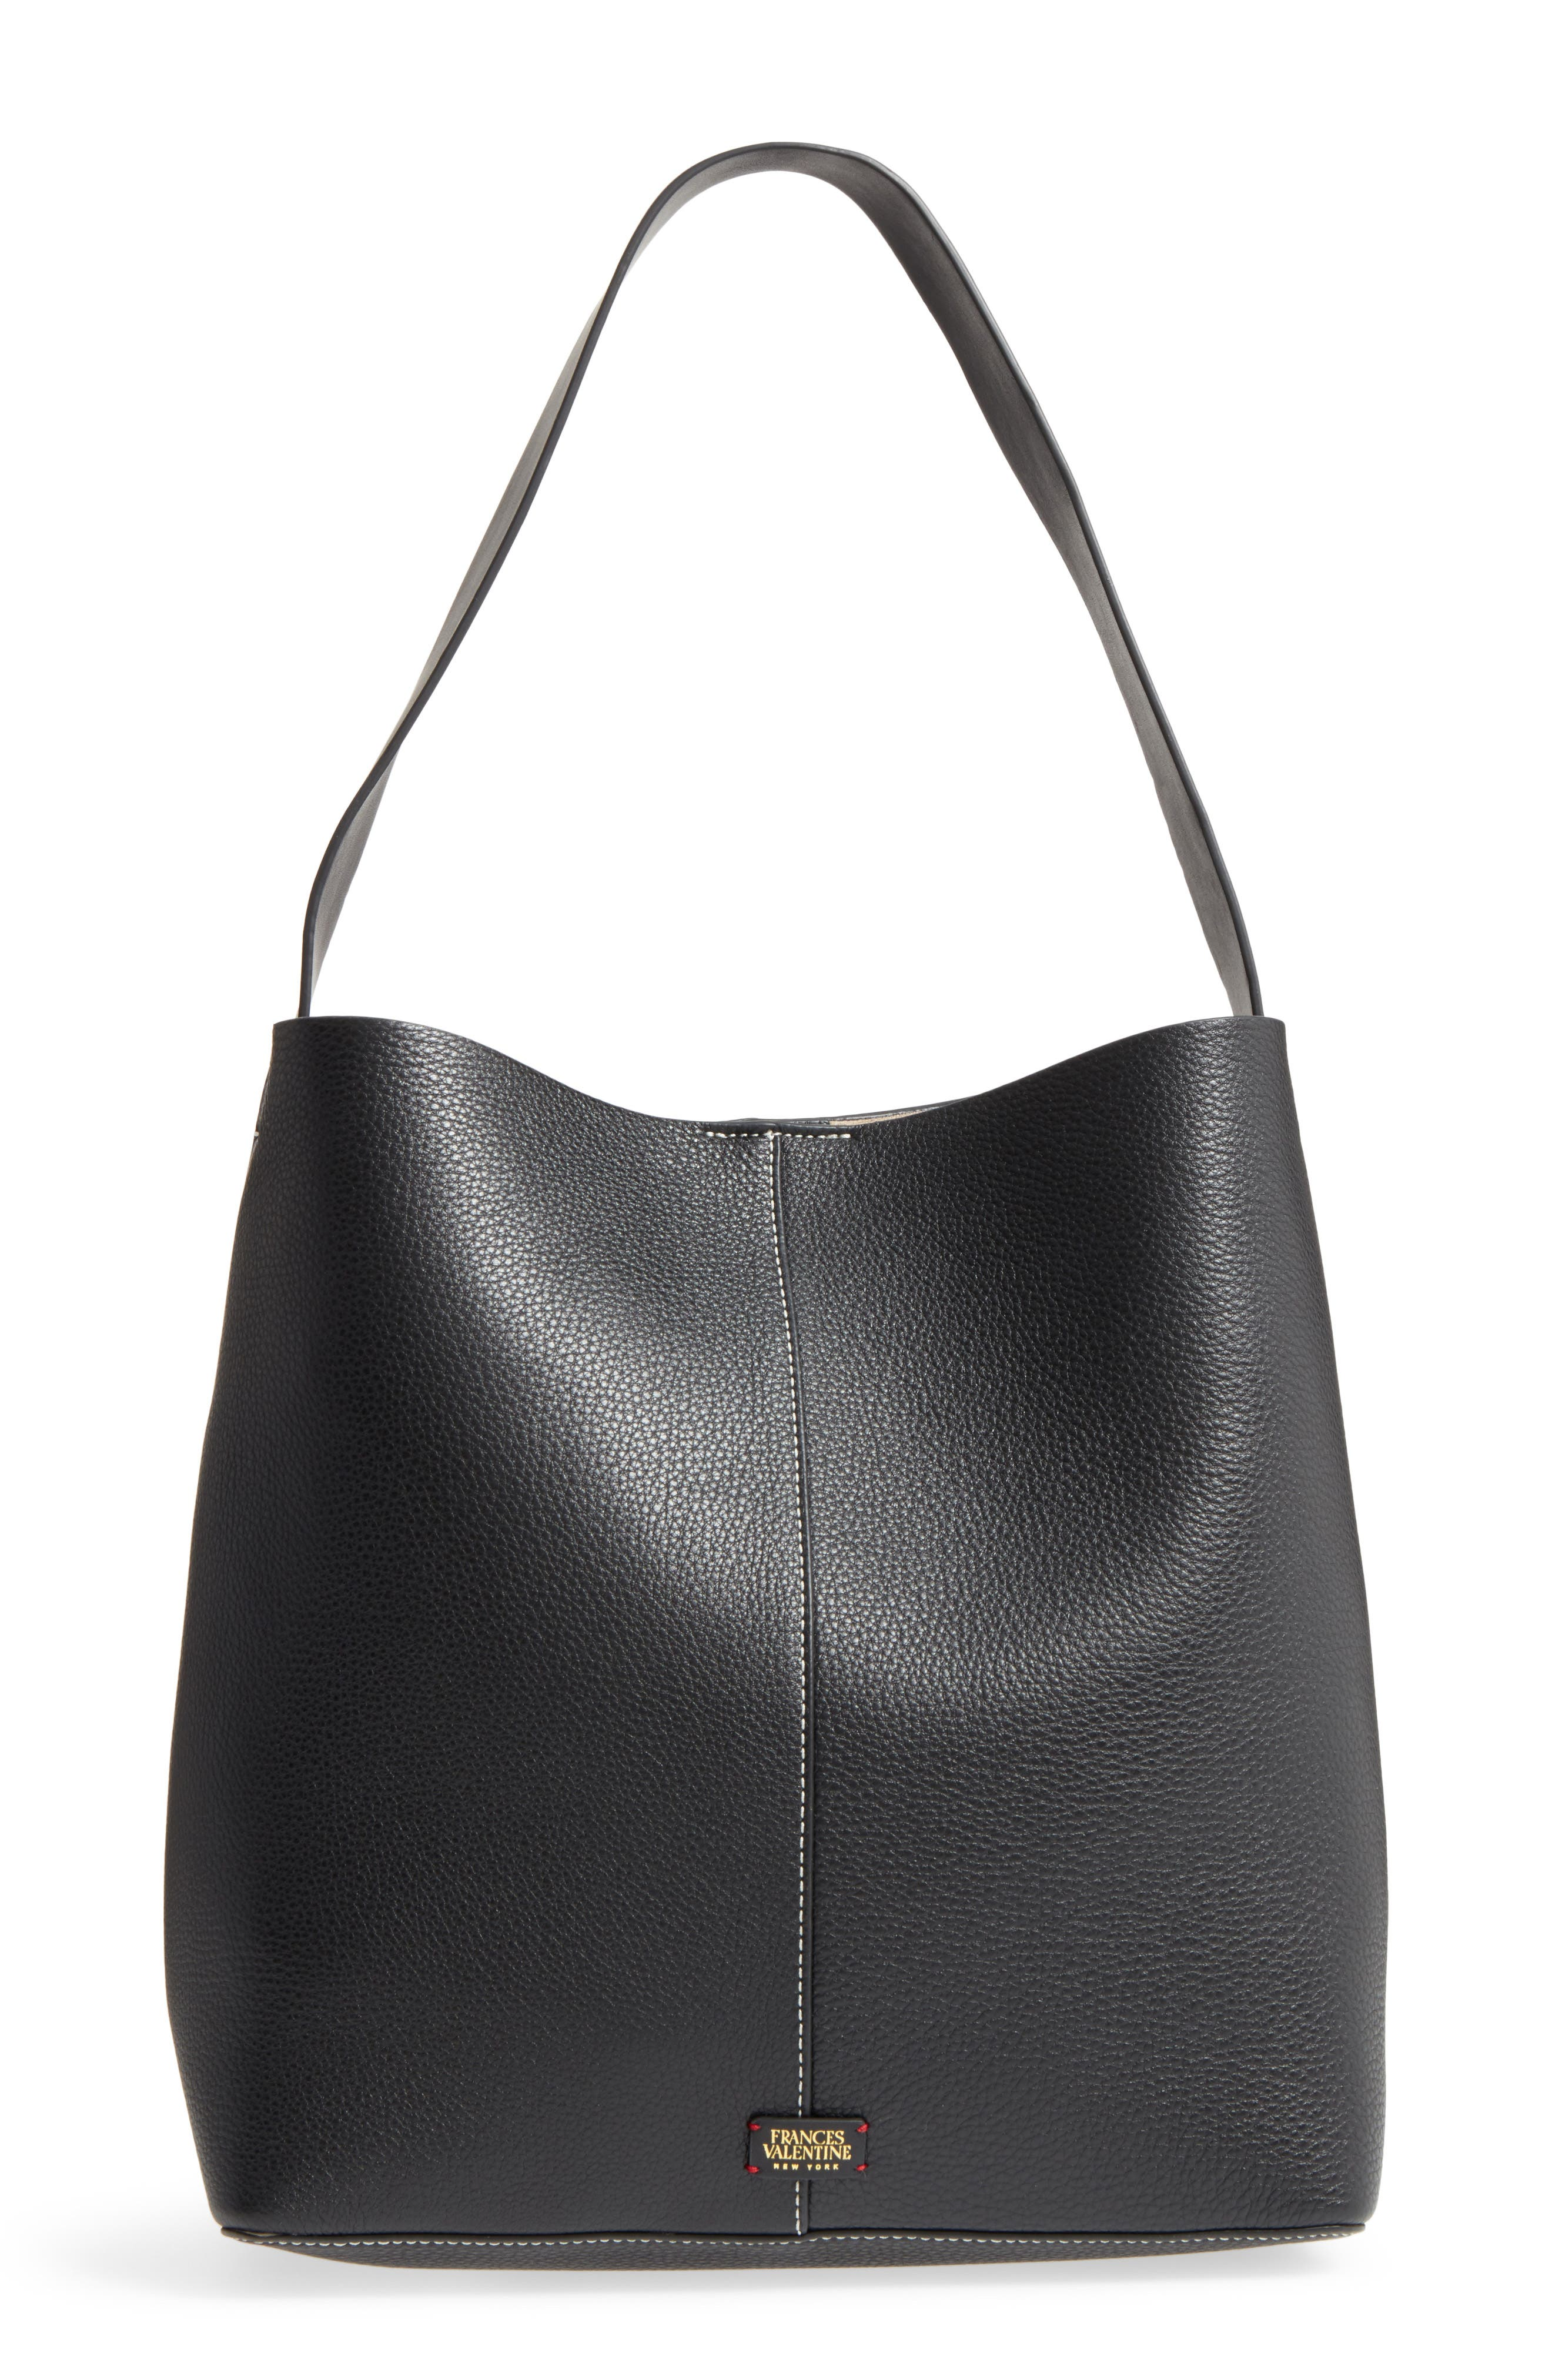 Main Image - Frances Valentine Large Leather Shoulder Bag